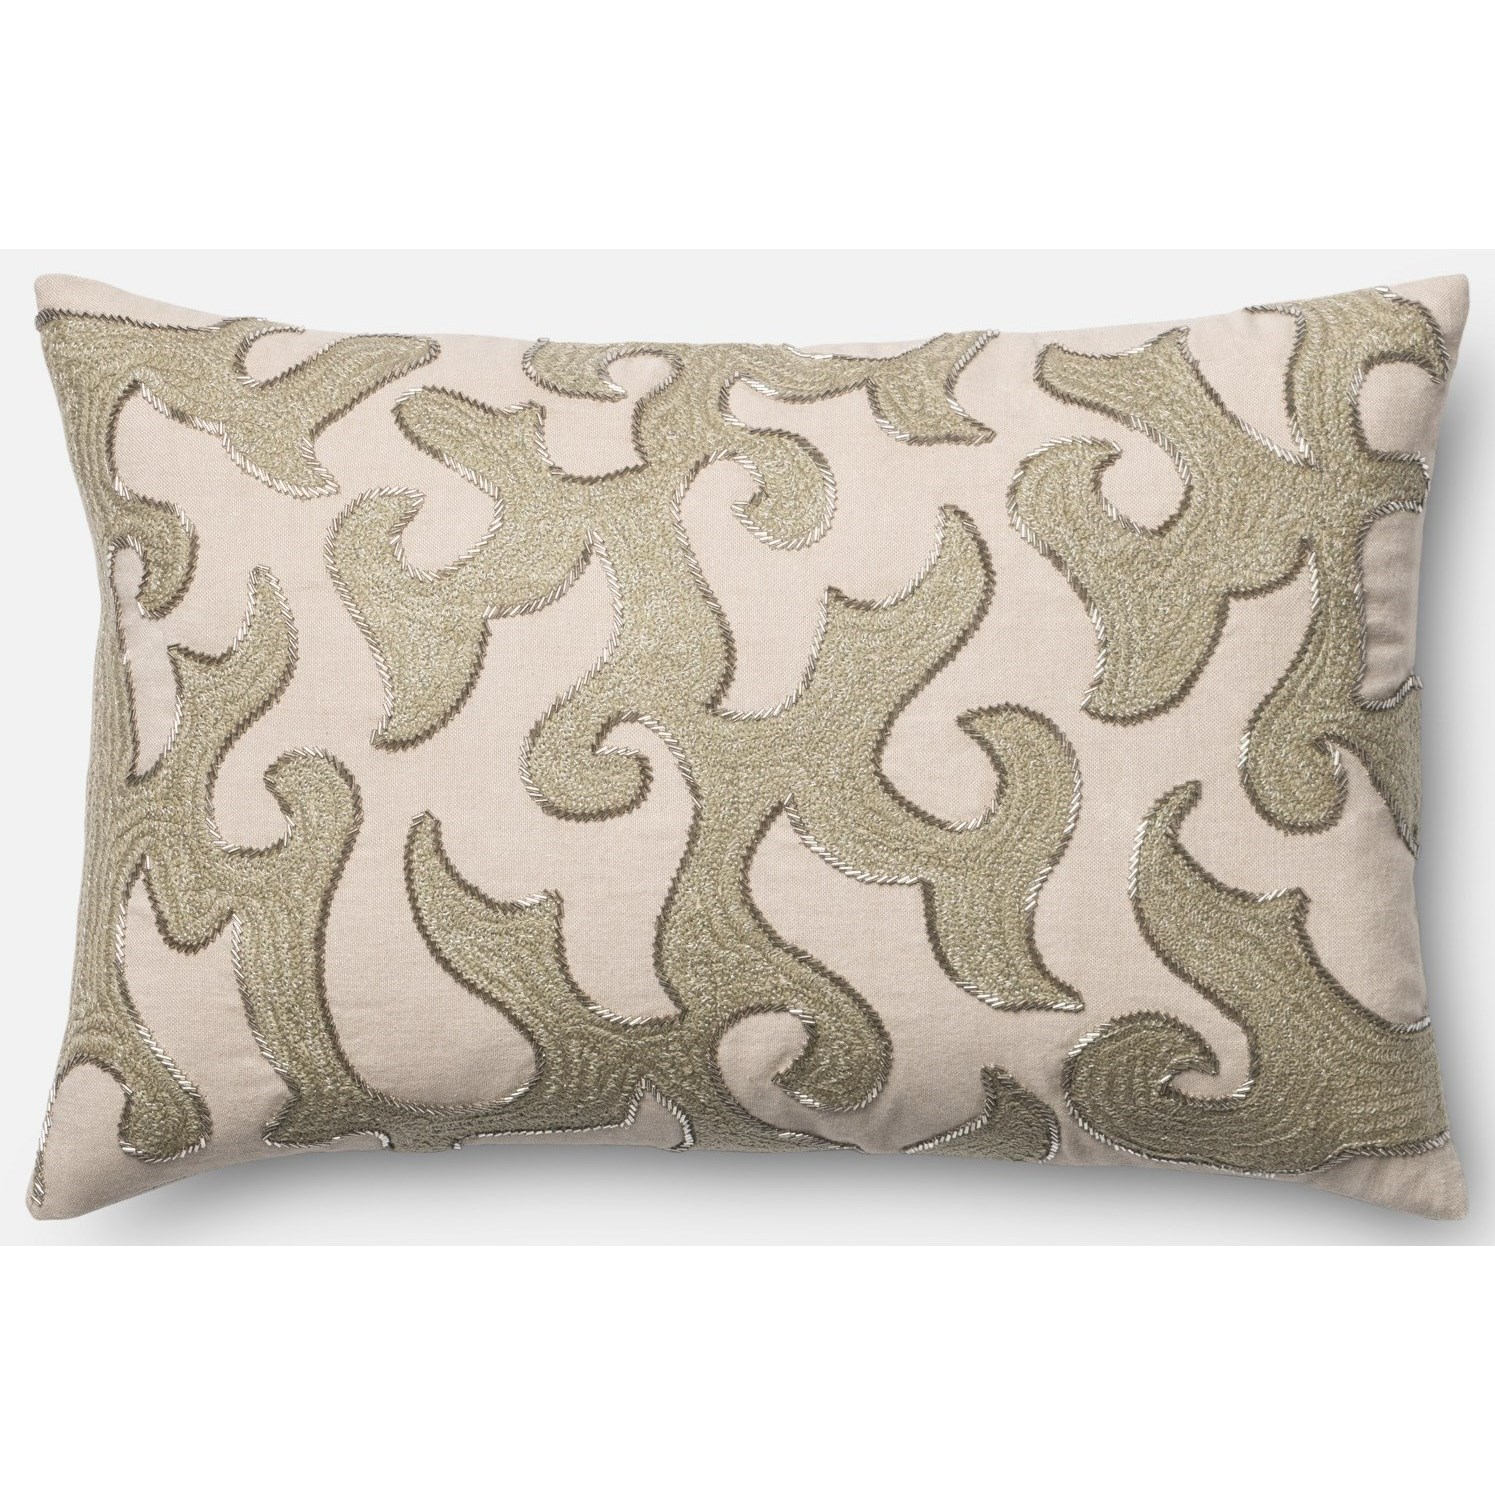 """Embroidery 13"""" X 21"""" Down Pillow by Loloi Rugs at Virginia Furniture Market"""